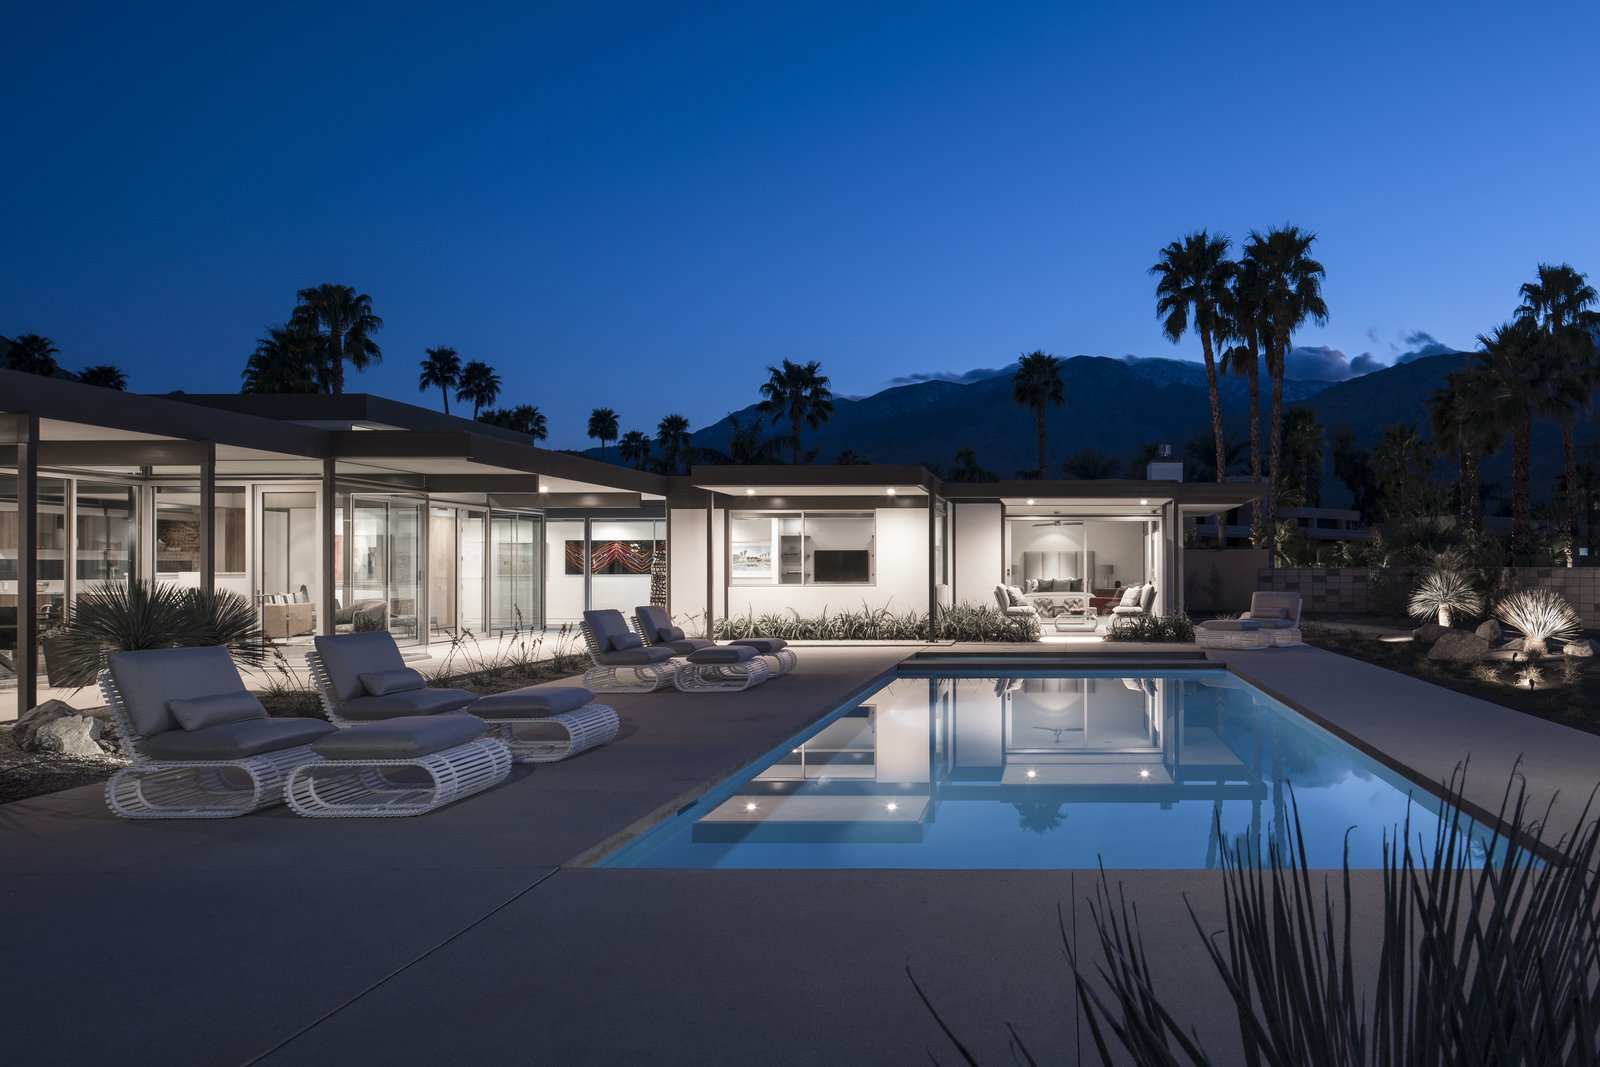 Outdoor, Shrubs, Swimming, Trees, Large, Landscape, Boulders, Back Yard, Desert, and Concrete At dusk, the light-colored home glows like a lantern in the desert sky.  Best Outdoor Desert Swimming Photos from The Last Donald Wexler–Designed Home Ever Built Asks $2.65M